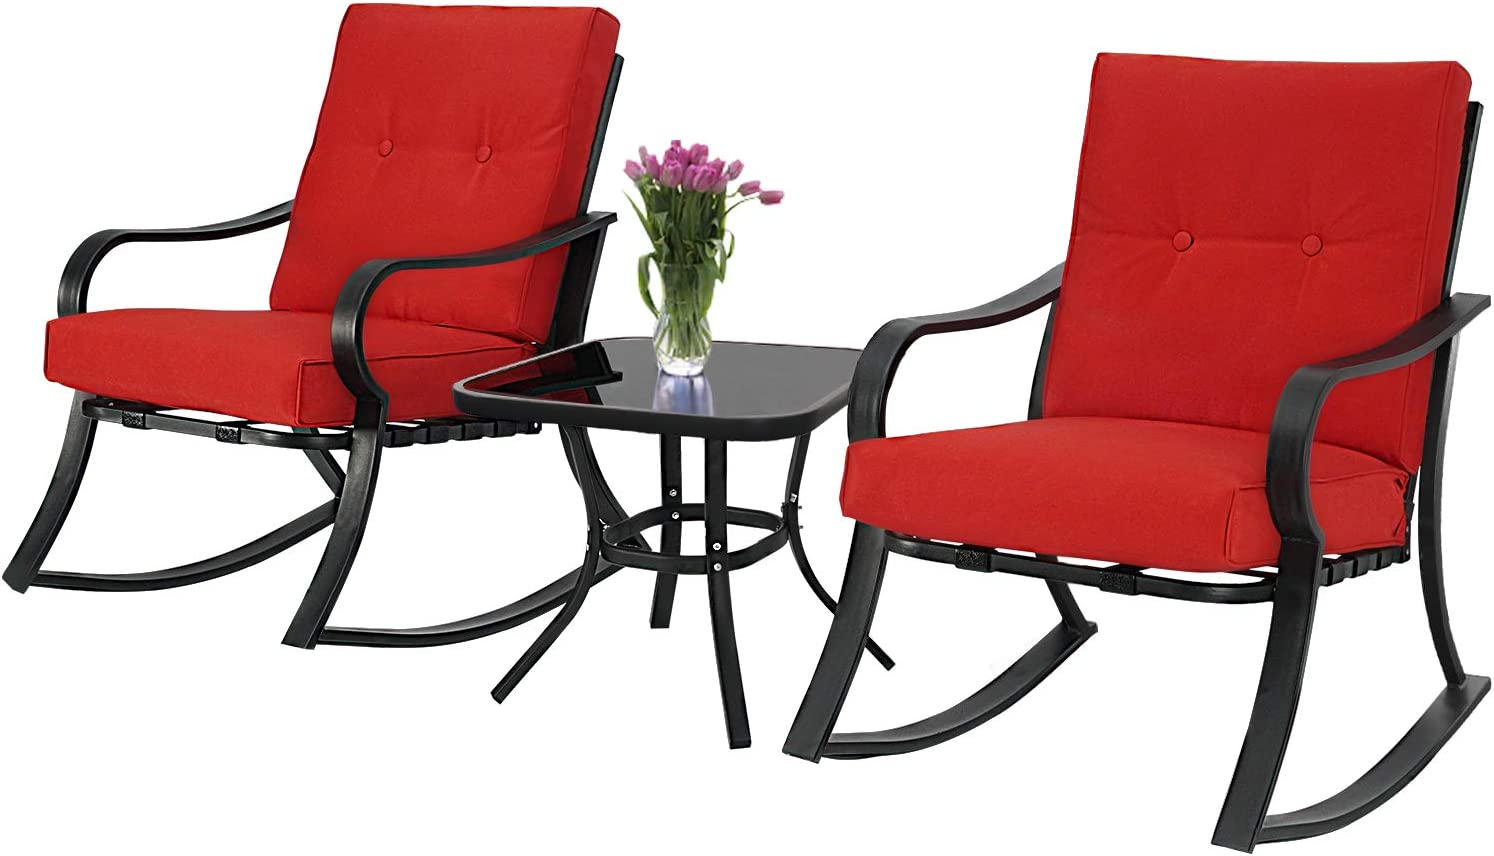 SUNCROWN Outdoor 3-Piece Rocking Chairs Bistro Set, Black Steel Patio Furniture with Red Thickened Cushion and Glass-Top Coffee Table